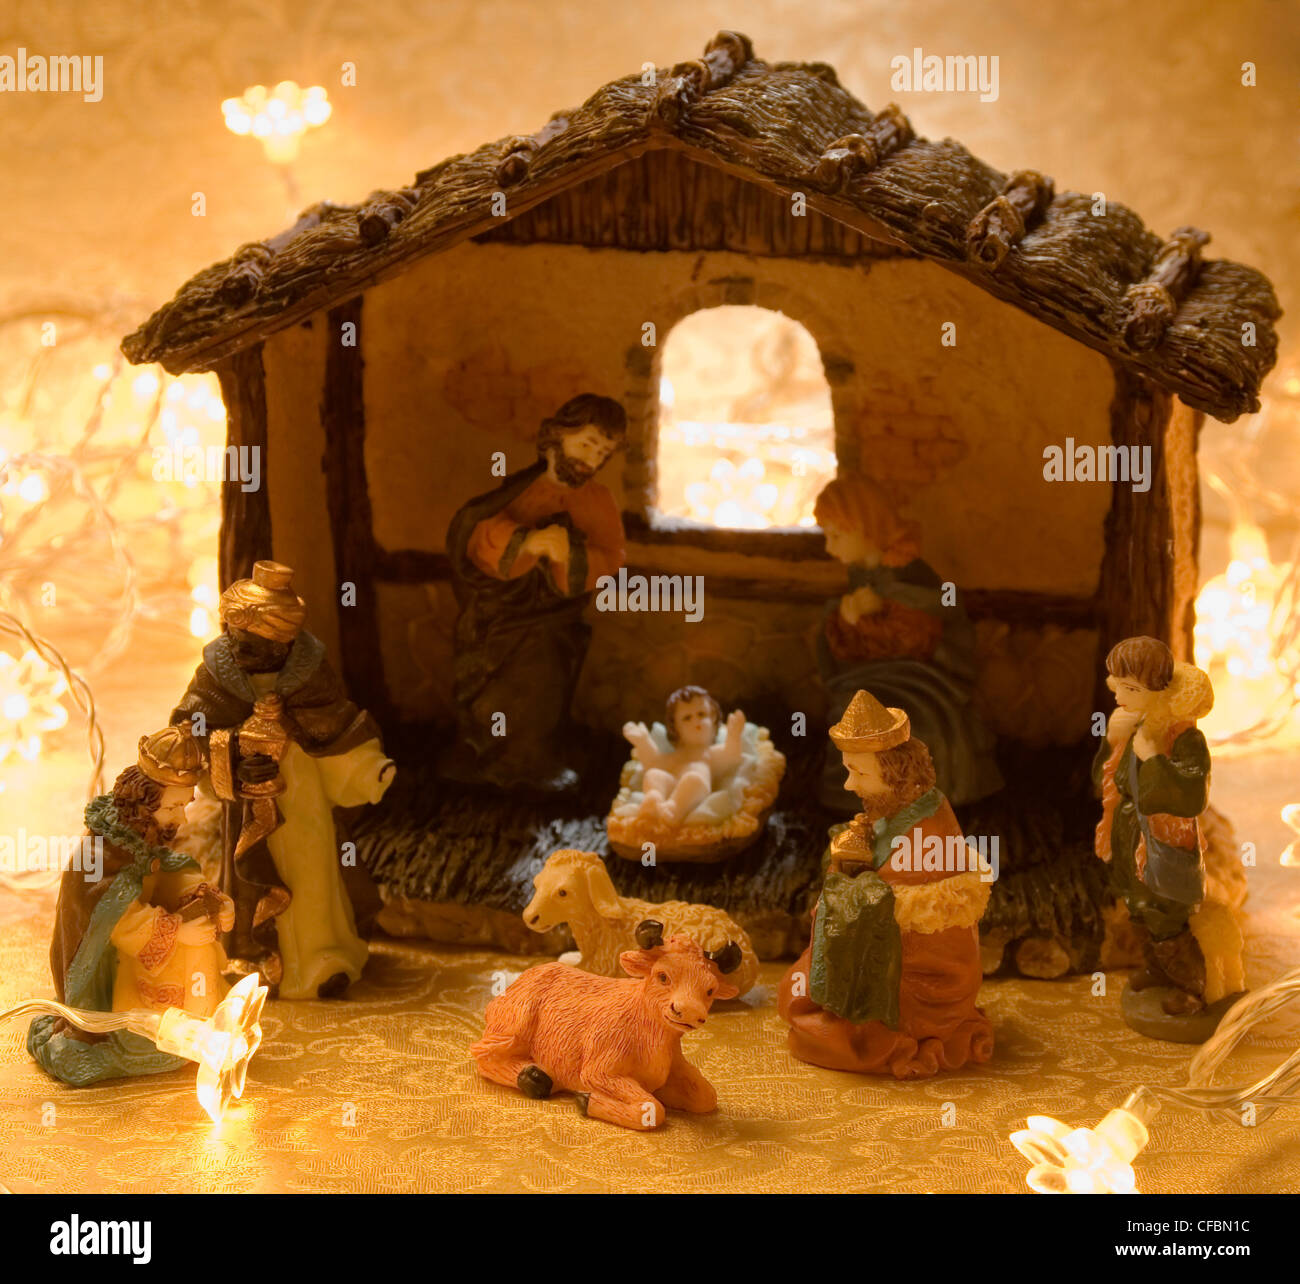 nativity scene christmas decoration barn and figurines of baby